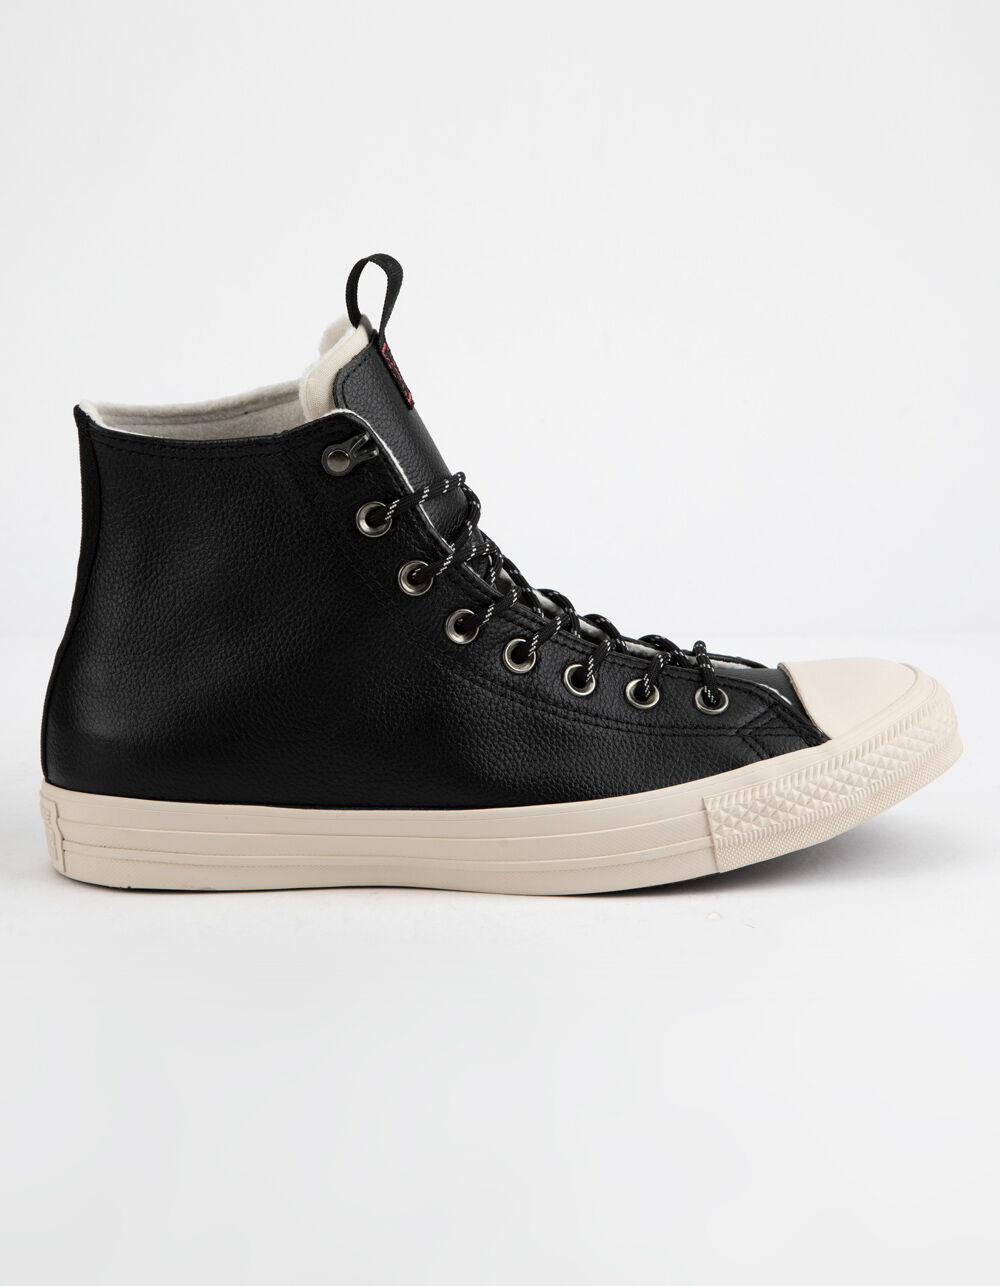 Image of CONVERSE CHUCK TAYLOR ALL STAR LEATHER BLACK & DRIFTWOOD HIGH TOP SHOES